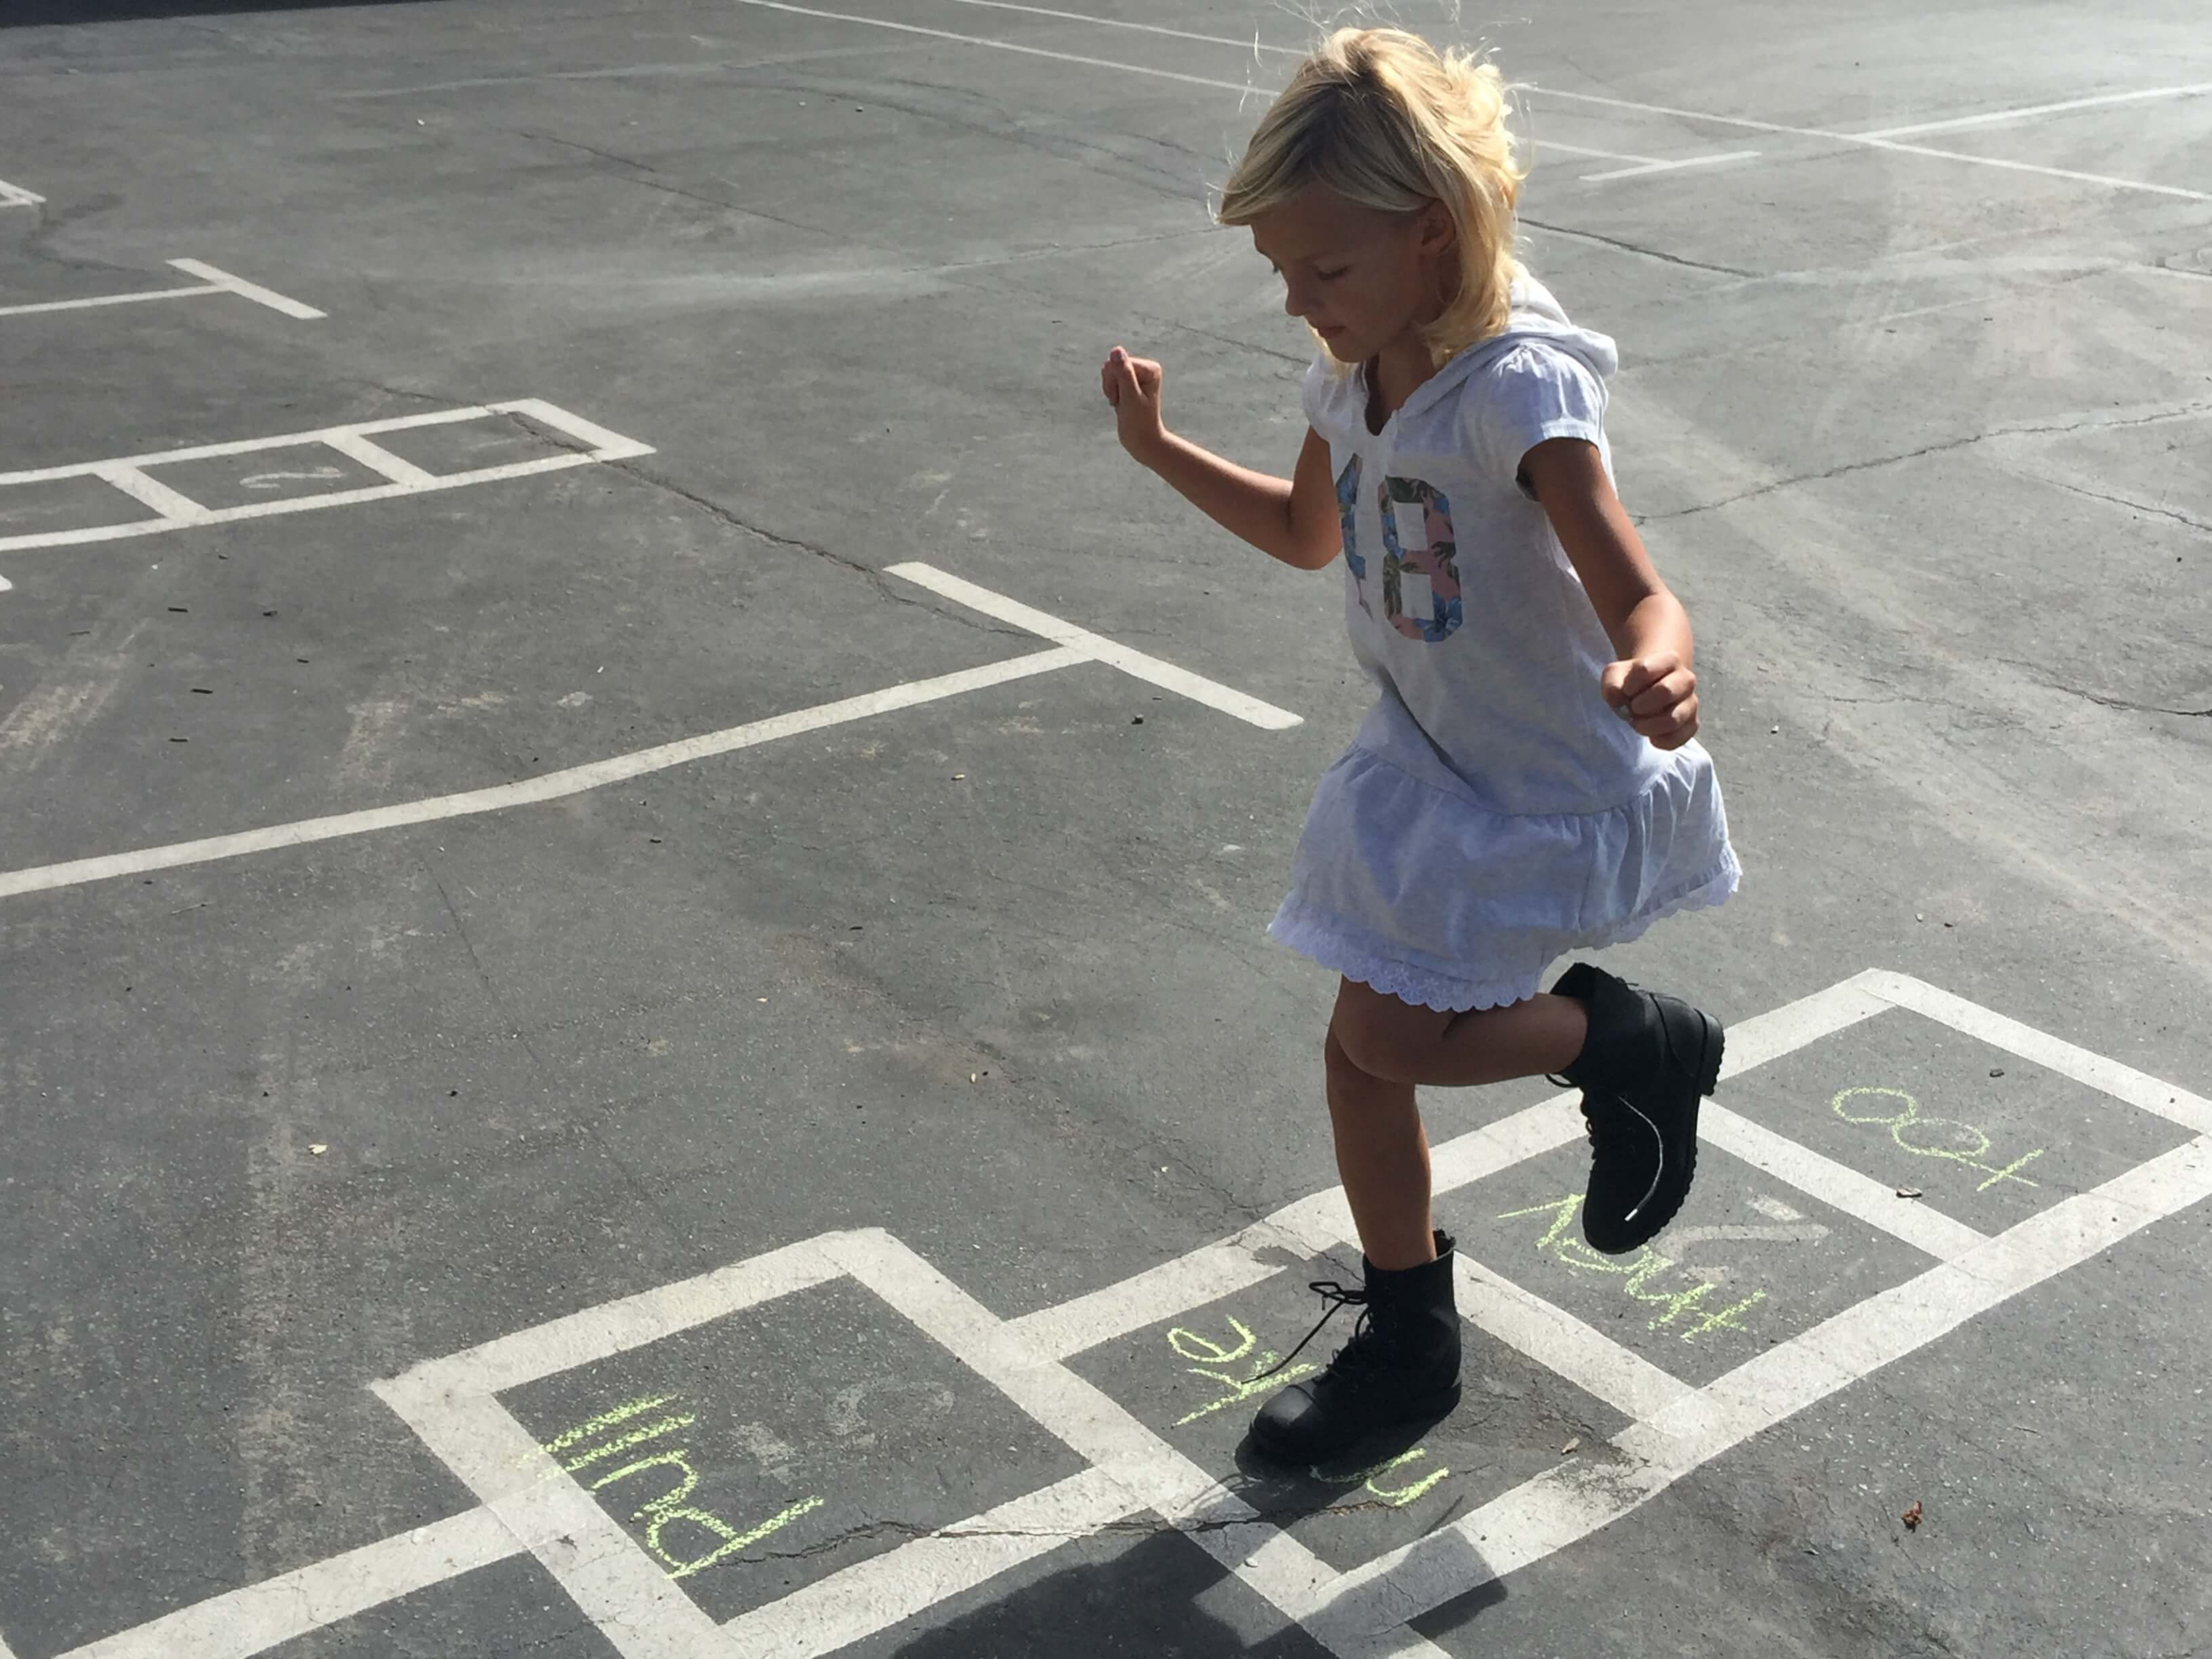 Rules to play Hopscotch: Amazon.com.au: Appstore for Android |Rules For Playing Hopscotch